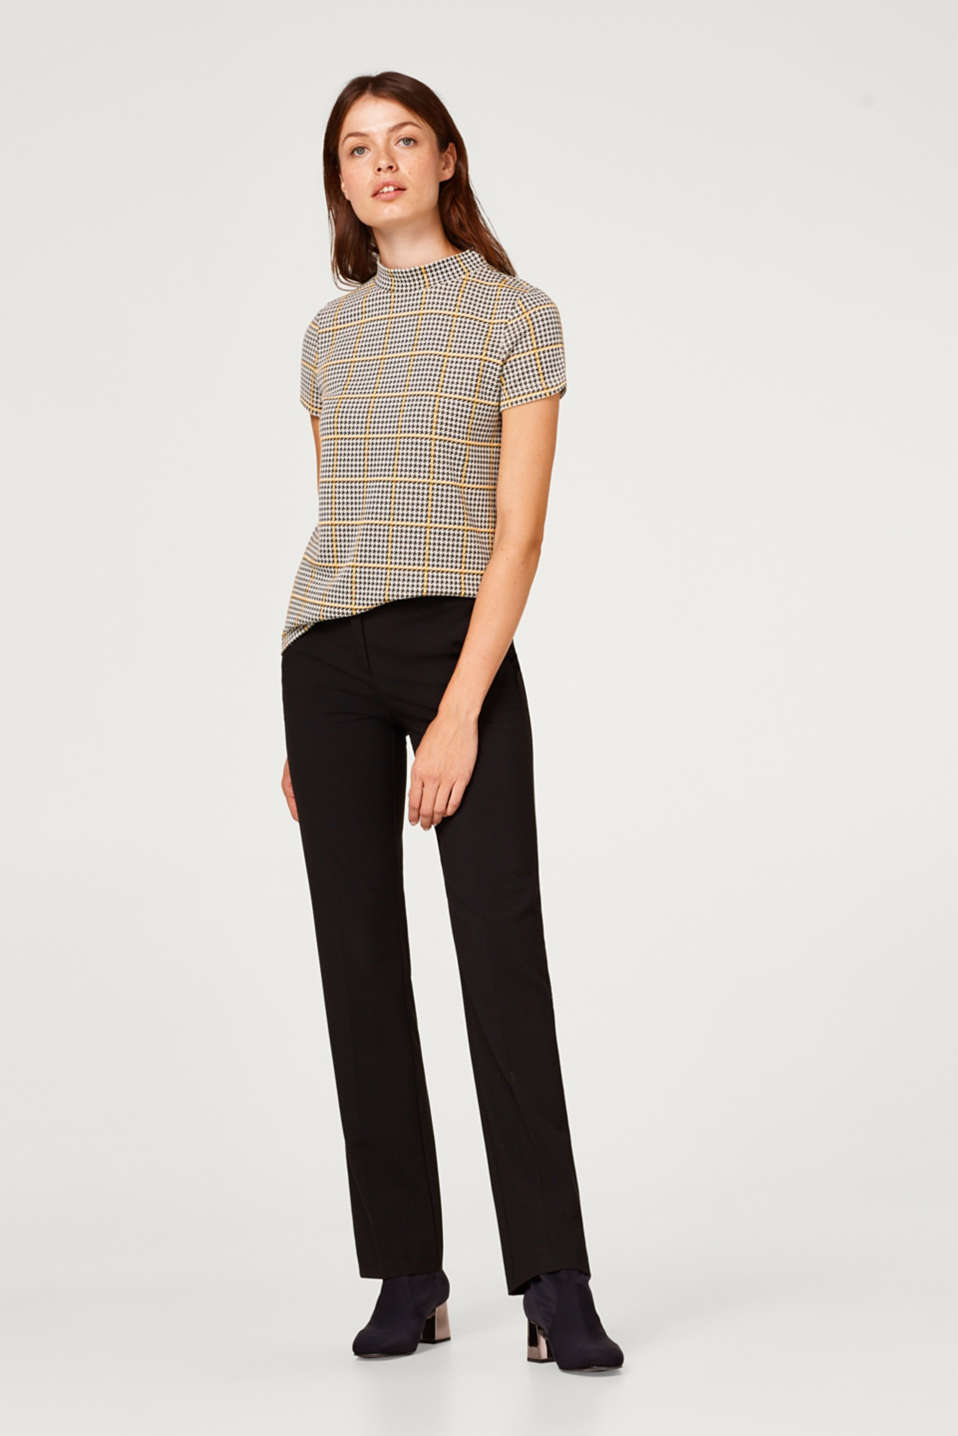 Turtleneck top with a houndstooth check